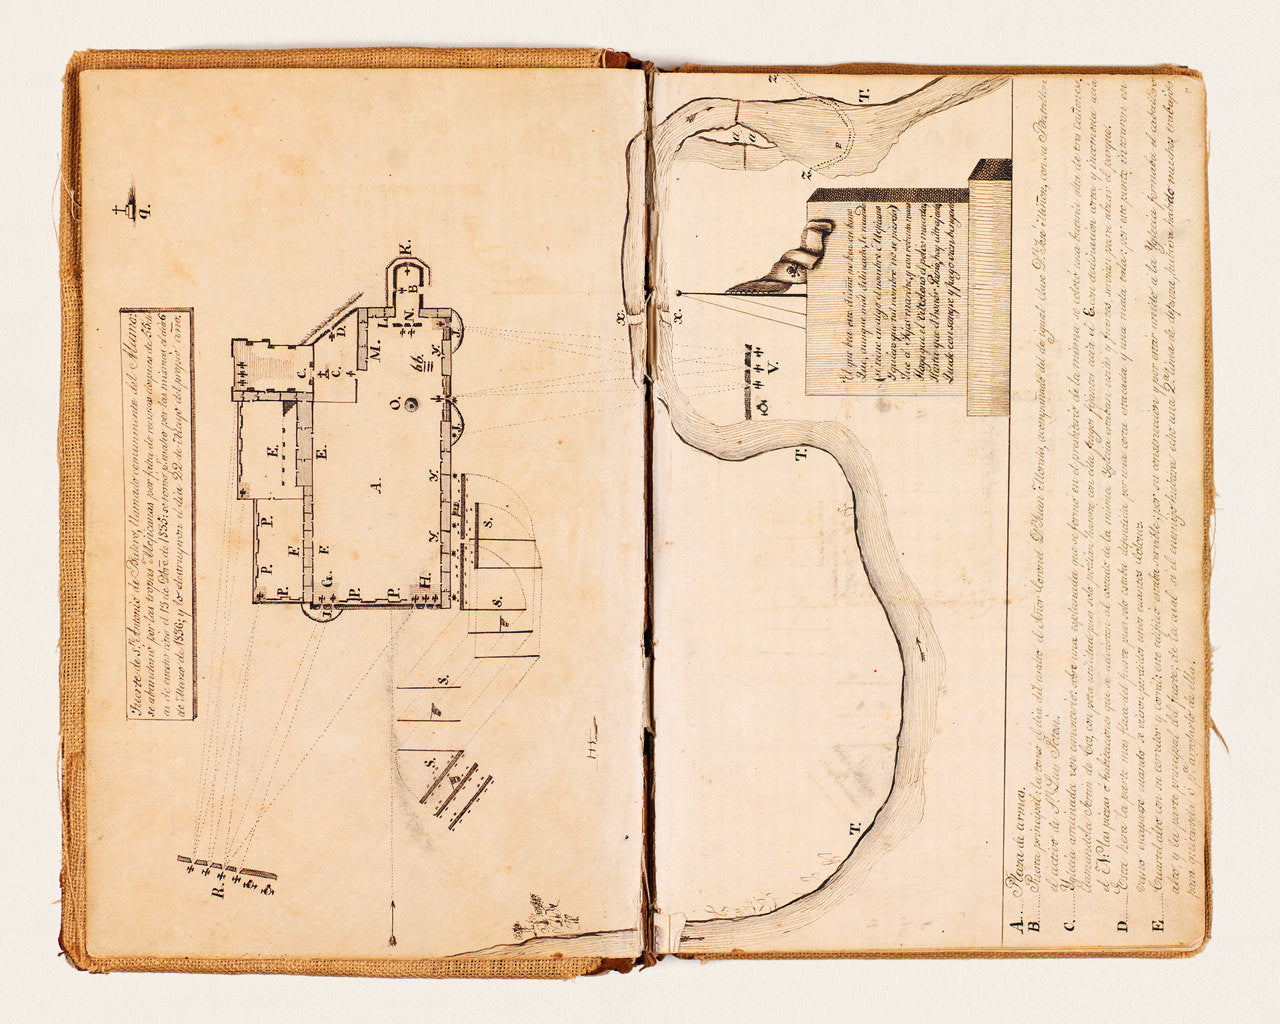 Texas, 1836, the Alamo, Manuscript Plan, Texas Revolution